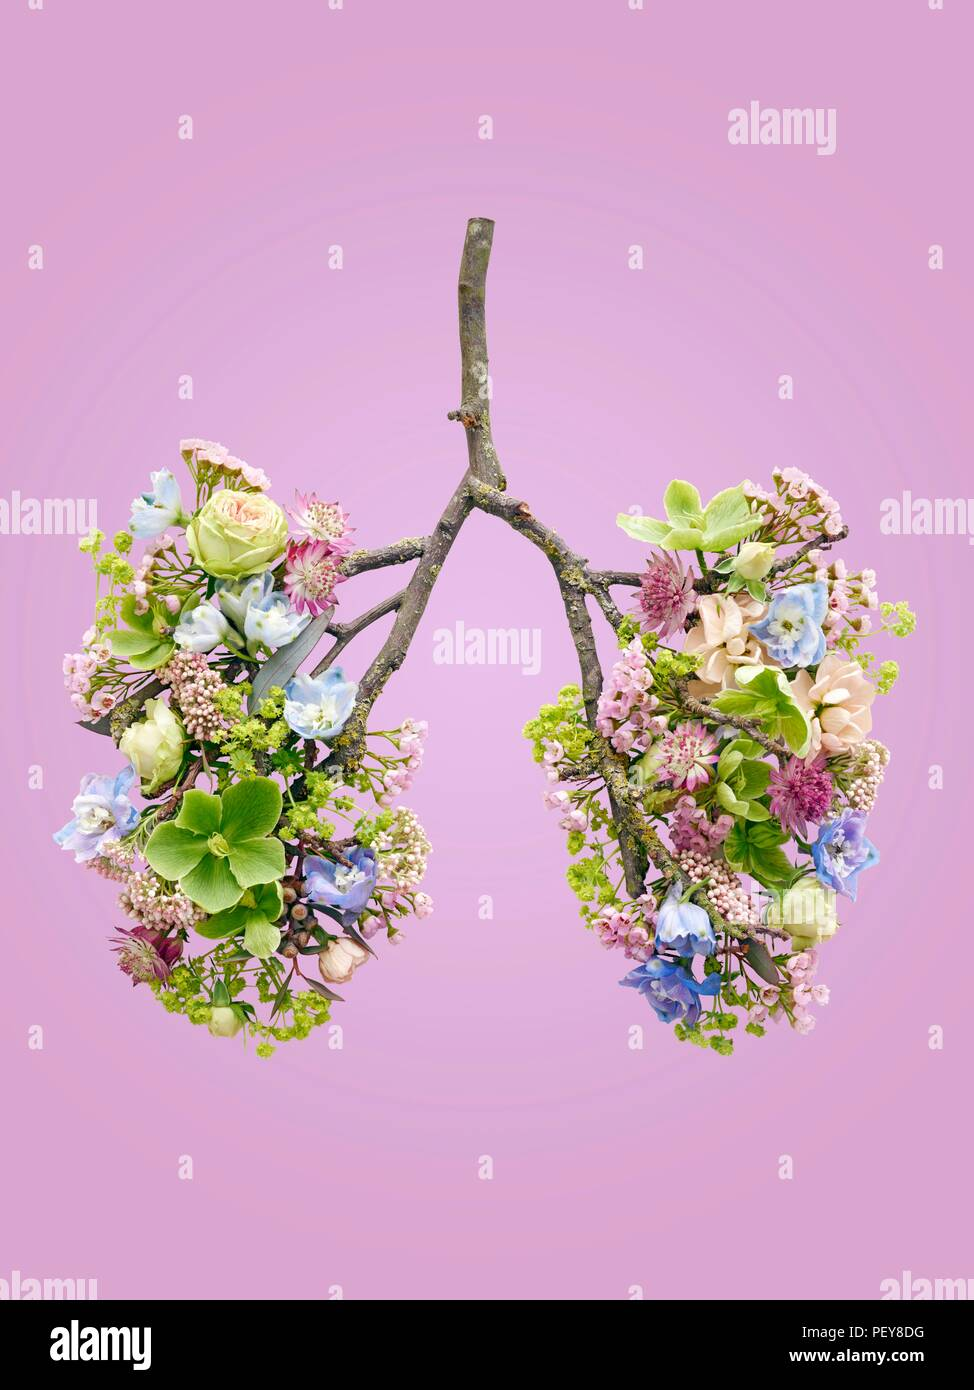 Spring flowers representing human lungs, conceptual studio shot. - Stock Image